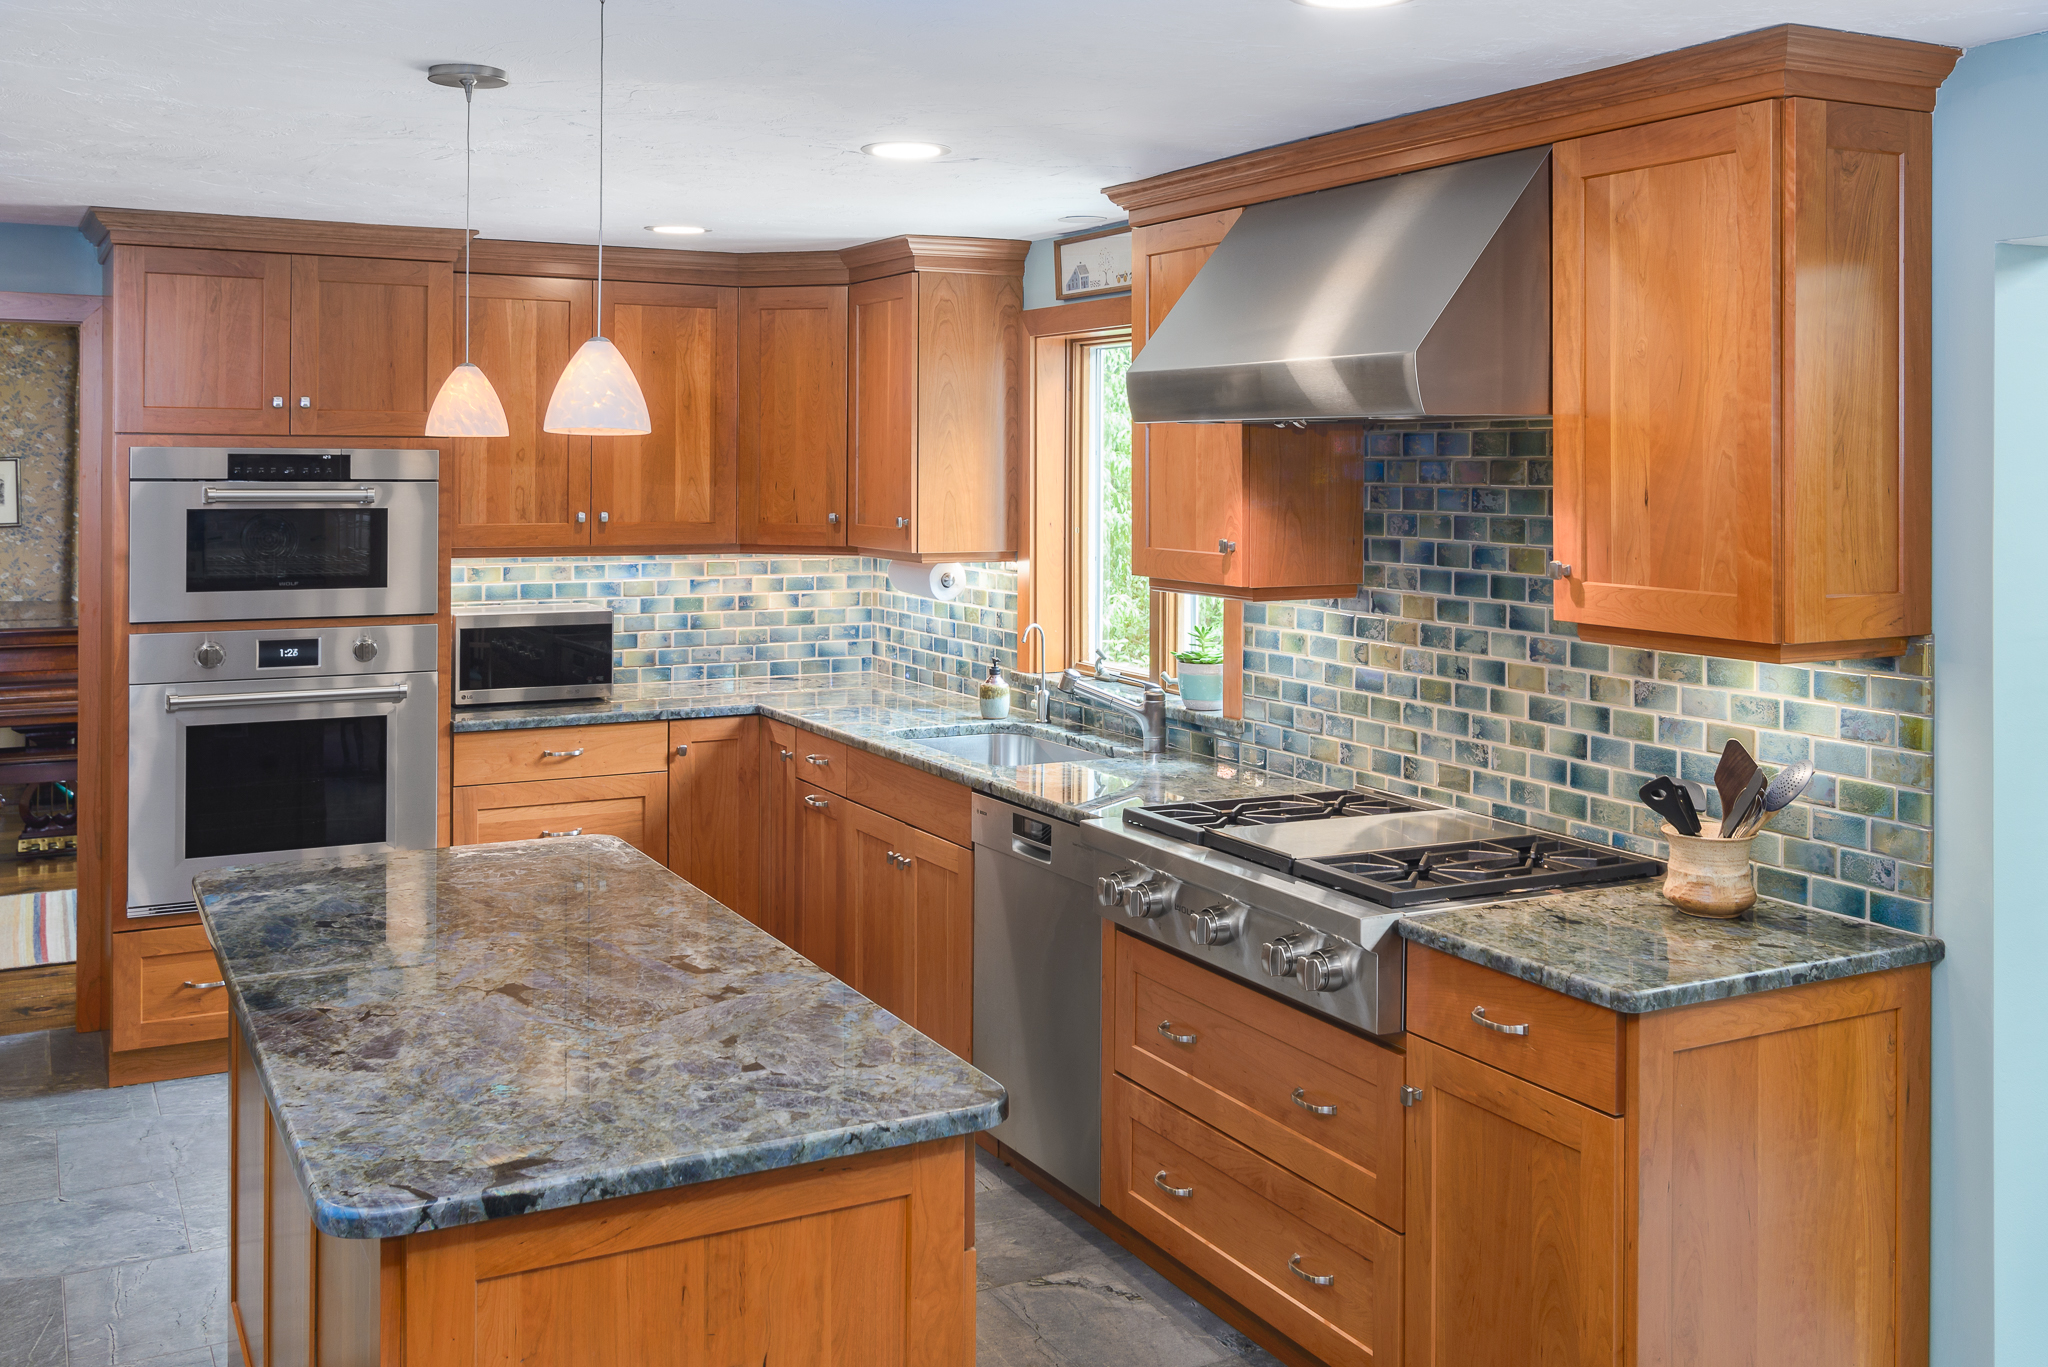 remodel kitchens do it yourself kitchen associates massachusetts remodeling ocean inspired in bolton ma